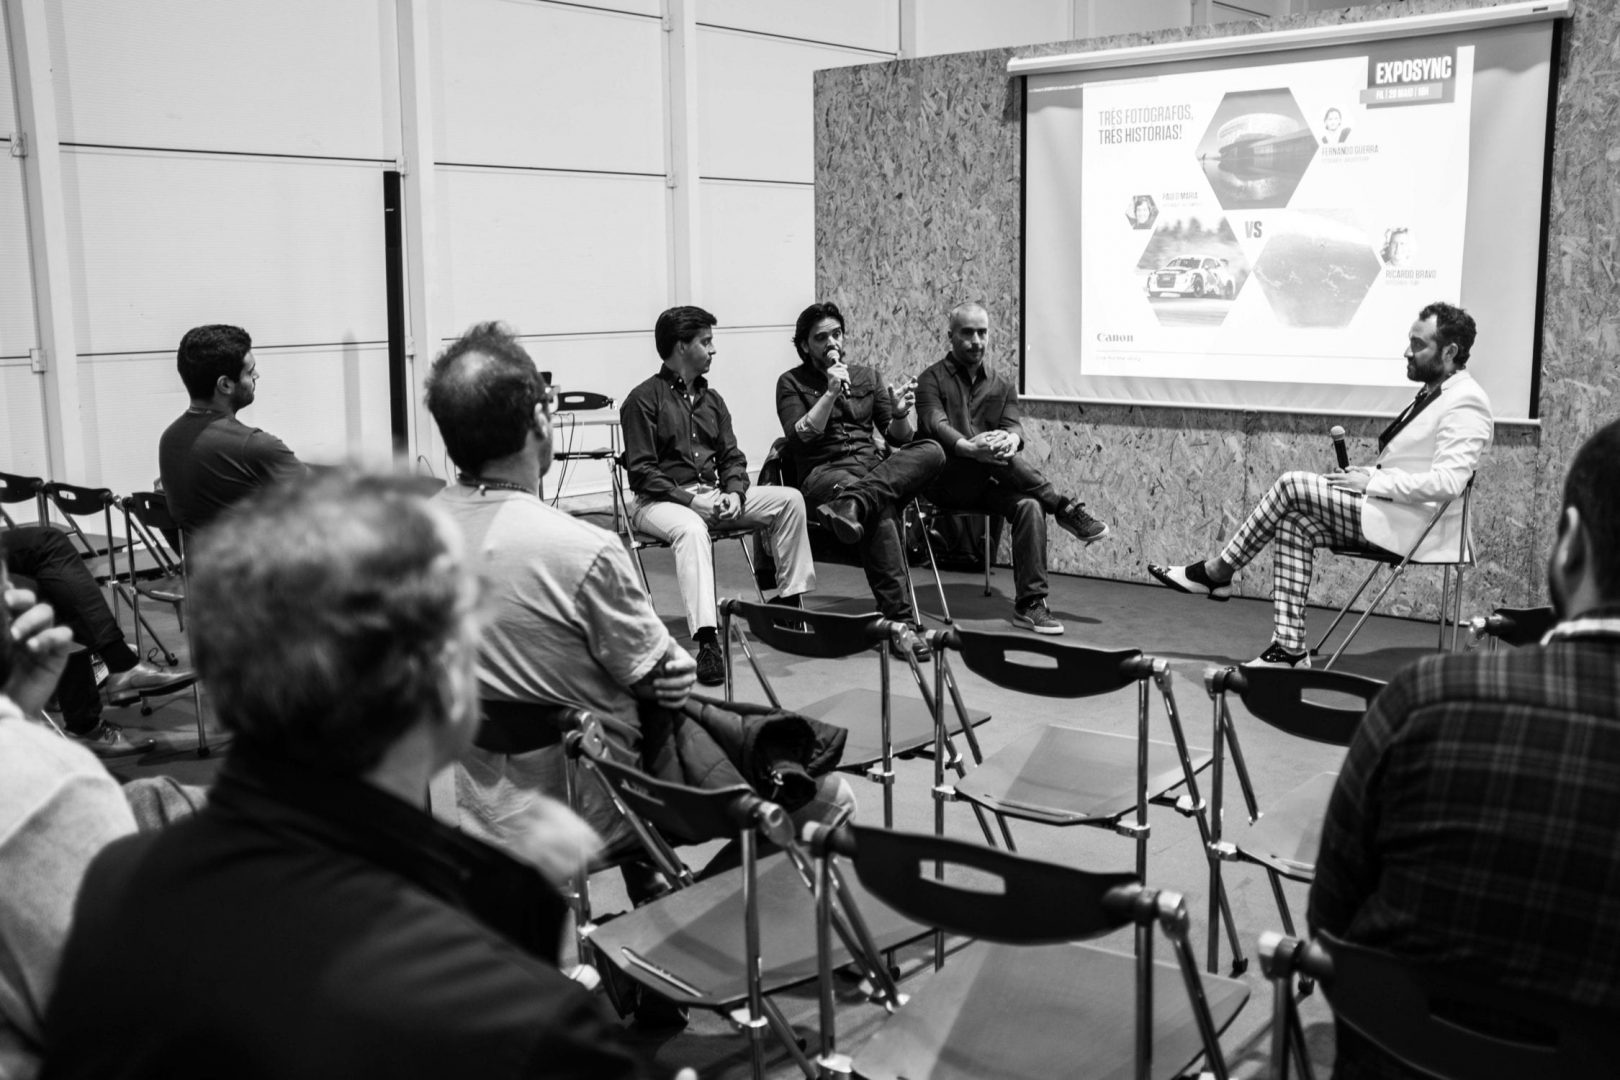 Paulo Maria, Fernando Guerra and Ricardo Bravo debating at Expo Sync